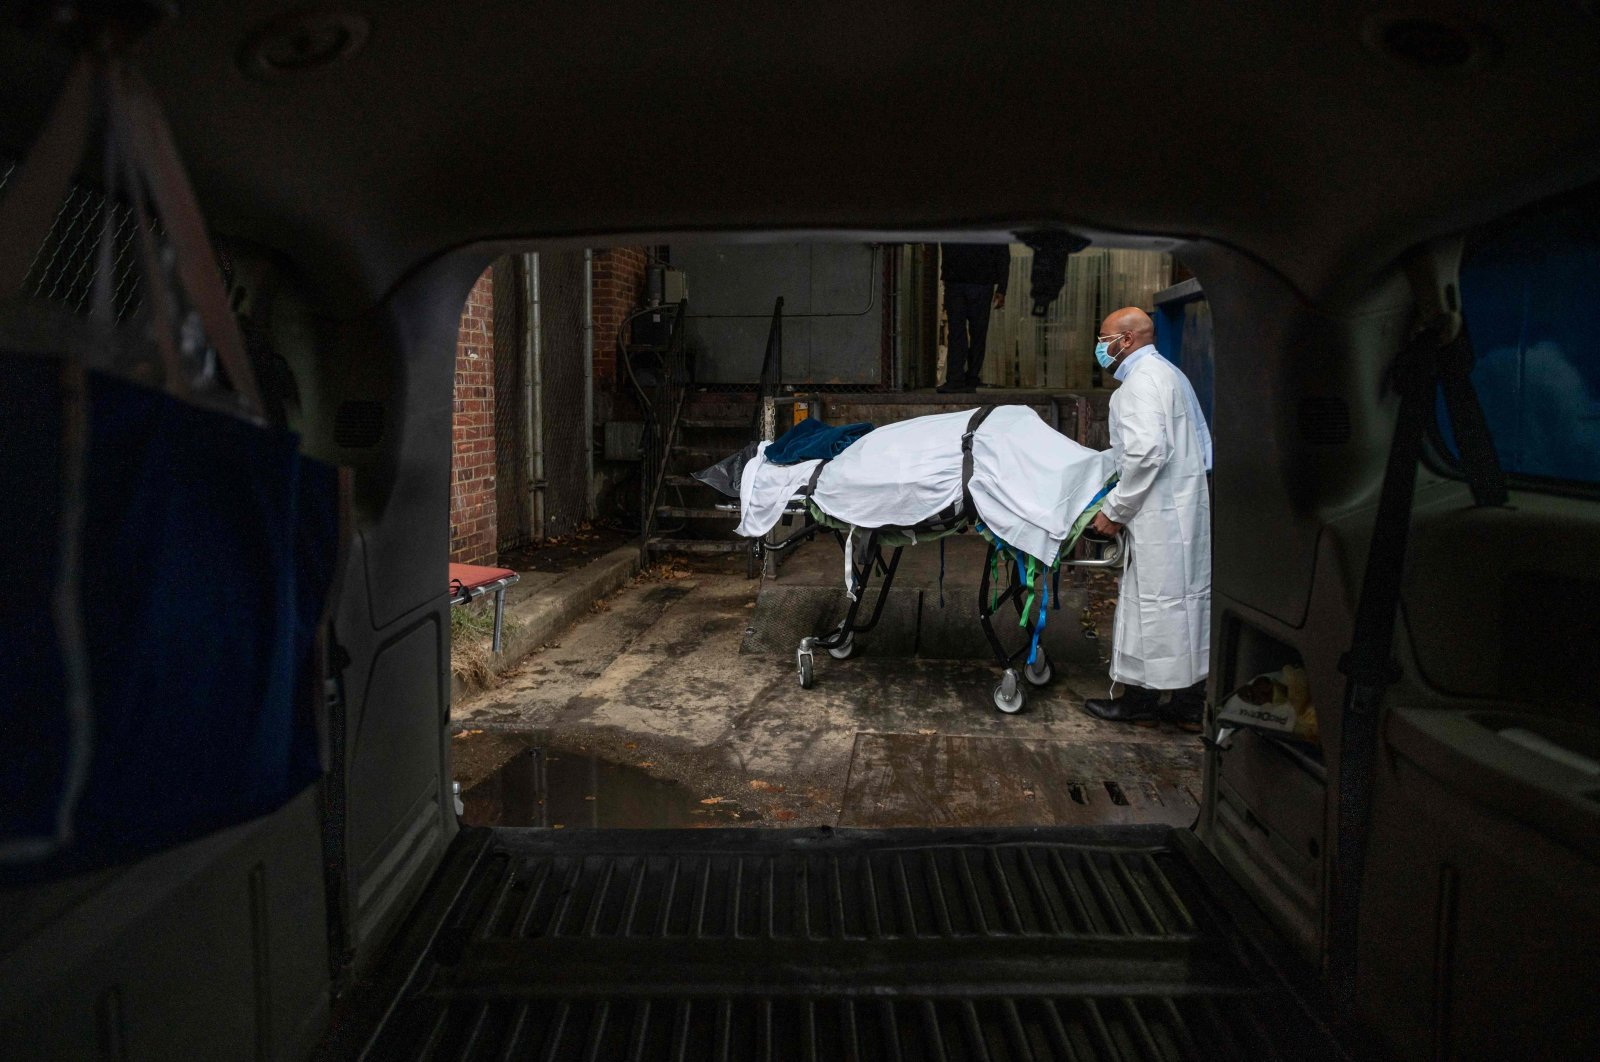 Maryland Cremation Services transporter Reggie Elliott brings the remains of a COVID-19 victim to his van from a hospital morgue in Baltimore, Maryland, the U.S., Dec. 24, 2020. (AFP Photo)